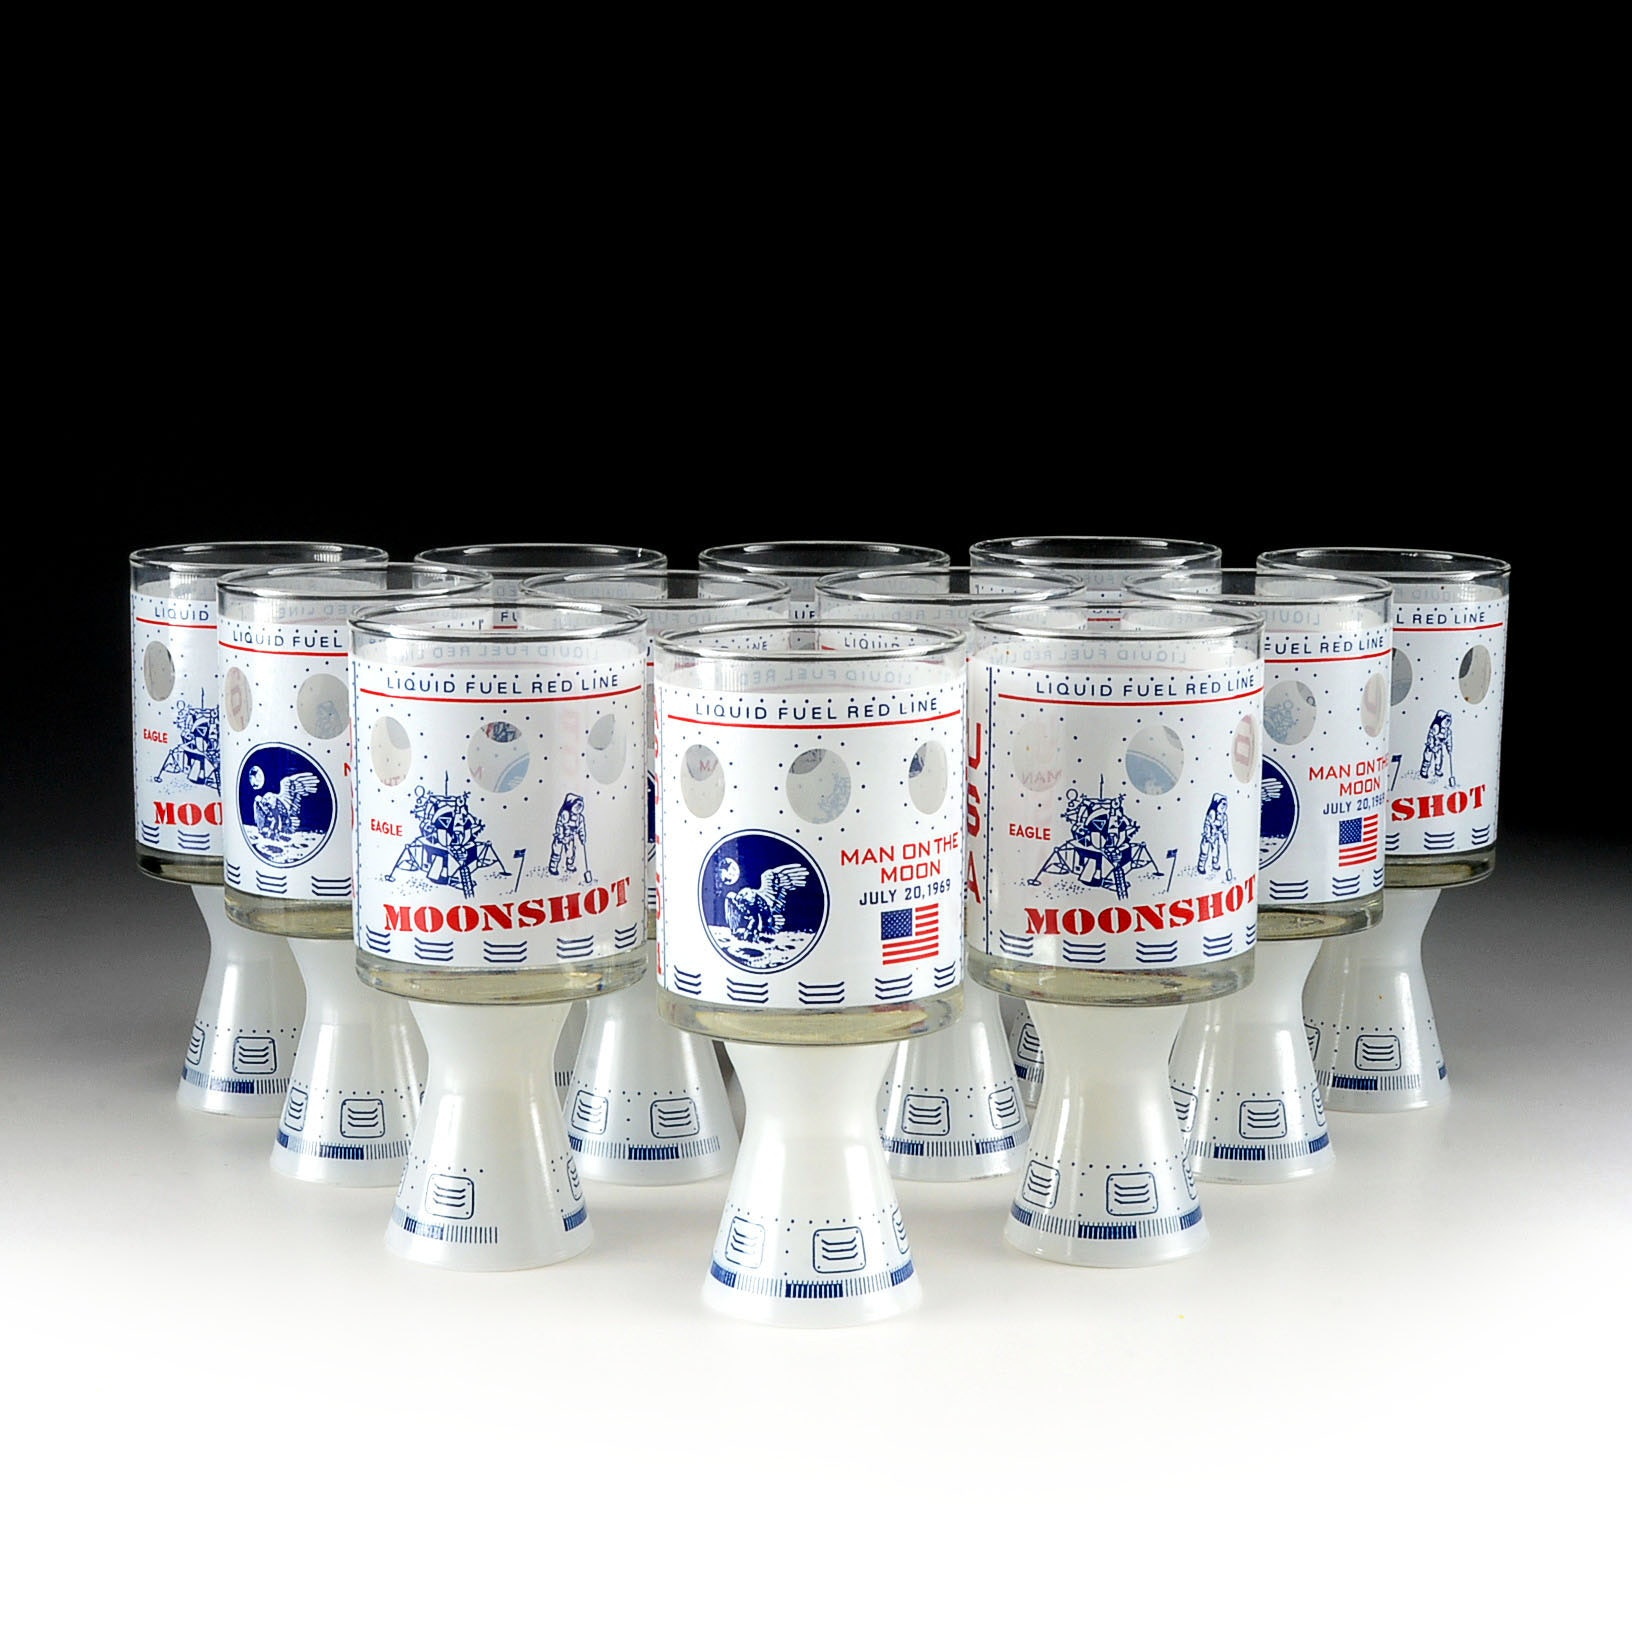 Set of Twelve Commemorative Moonshot Man on the Moon Double Ended Glasses